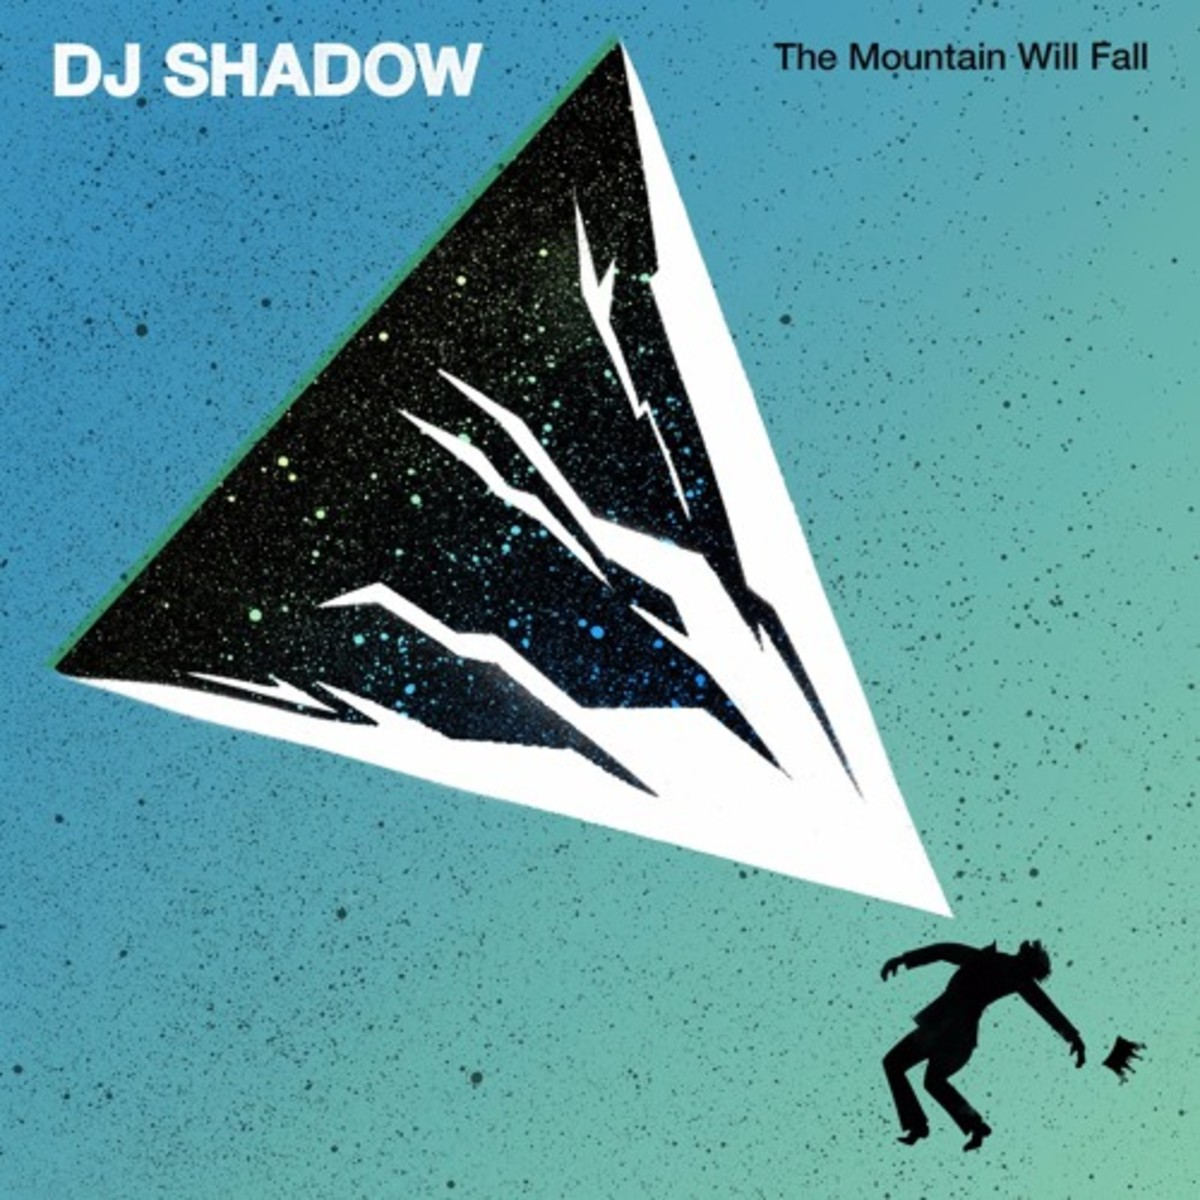 dj-shadow-the-mountain-will-fall.jpg